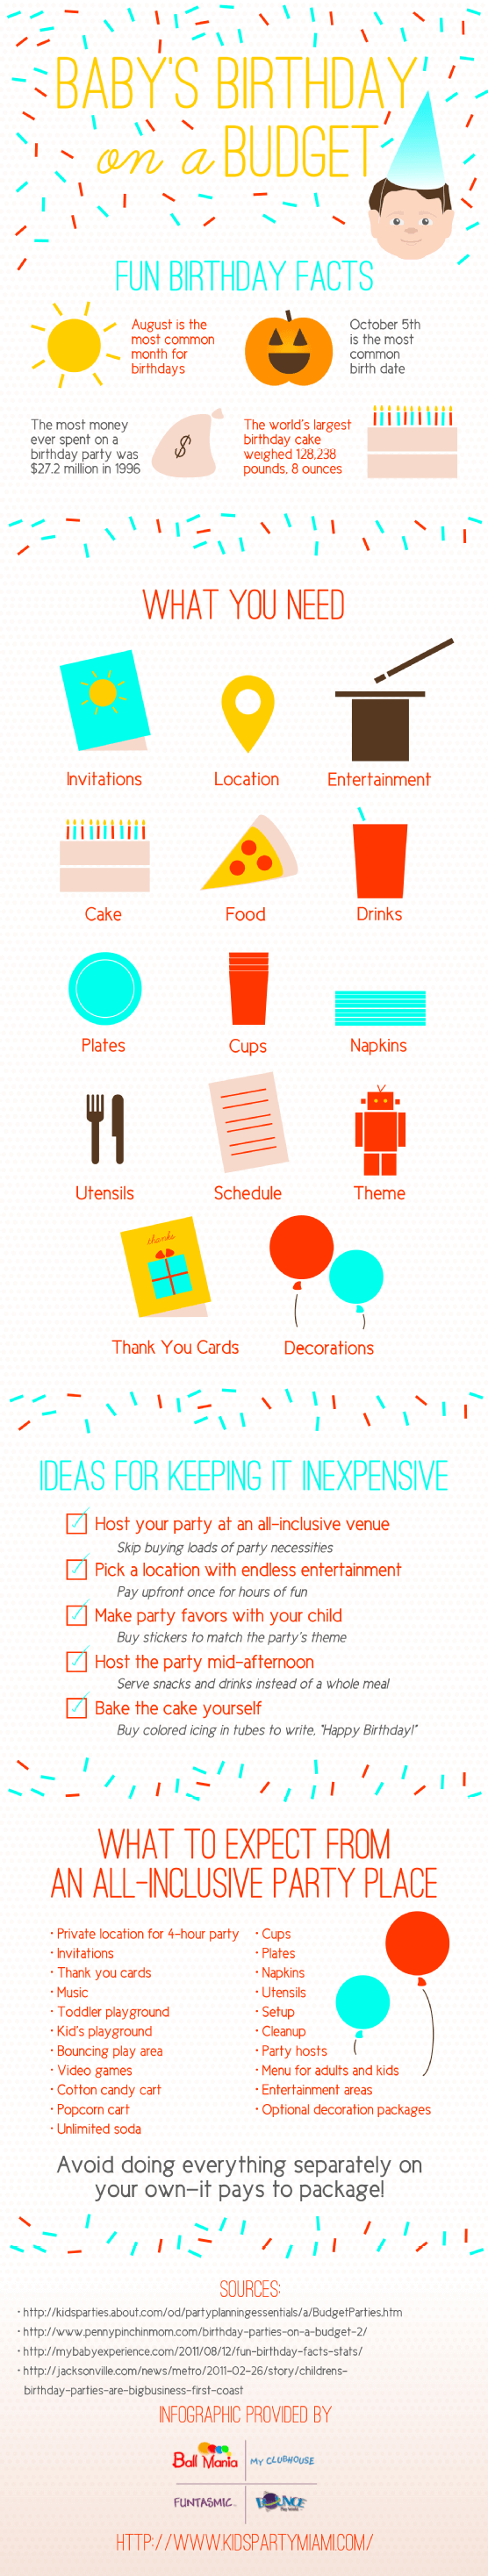 babys-birthday-on-a-budget-tips-tipsographic